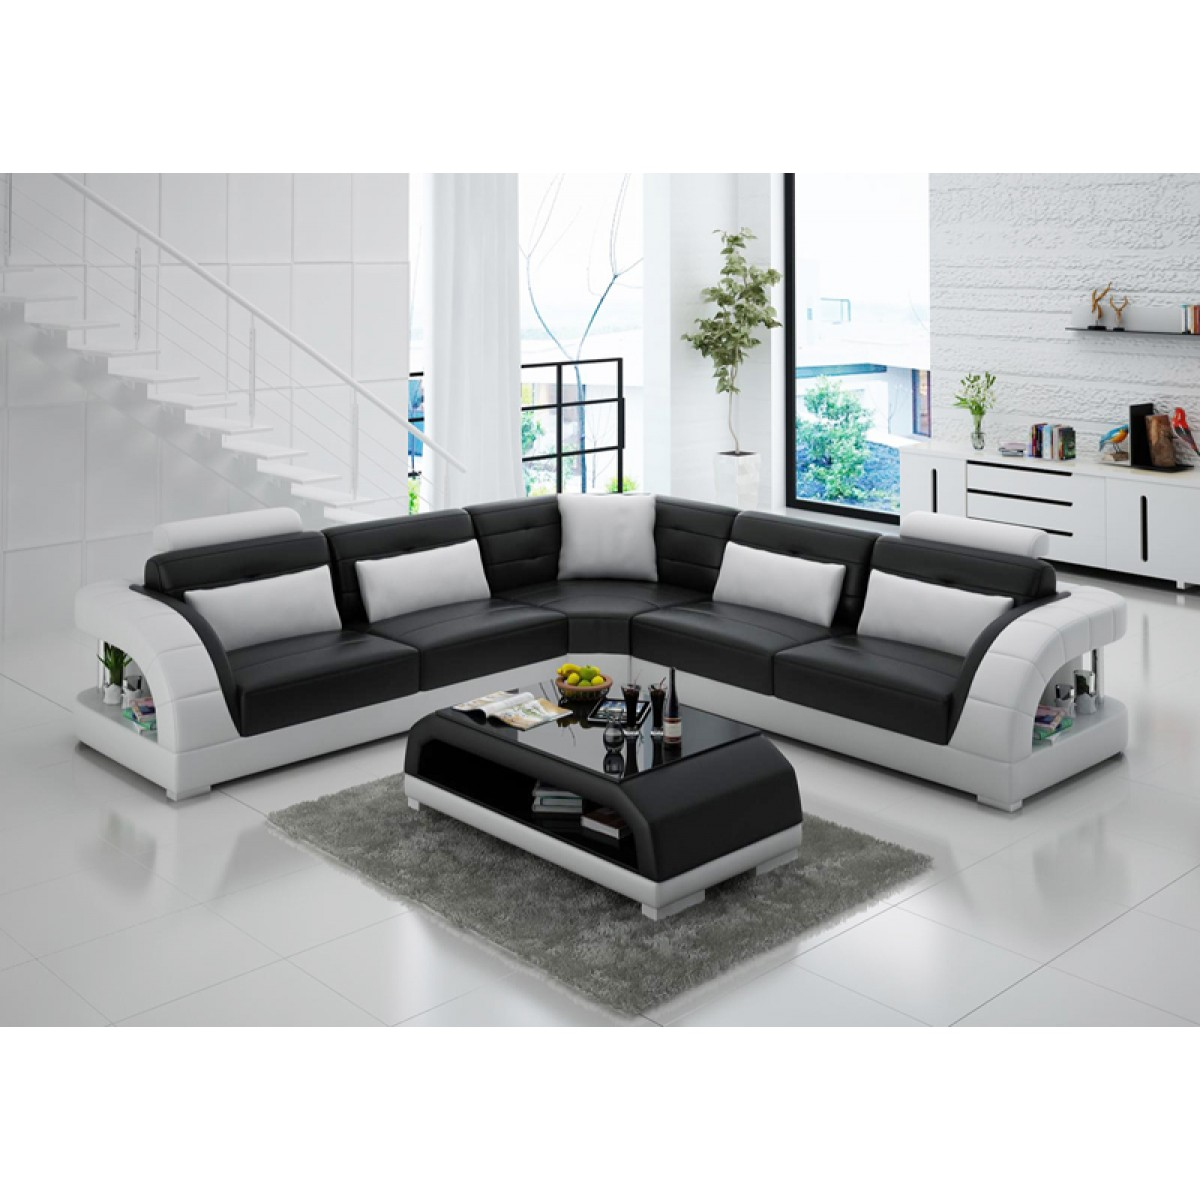 canape d angle grand royal sofa id e de canap et meuble maison. Black Bedroom Furniture Sets. Home Design Ideas